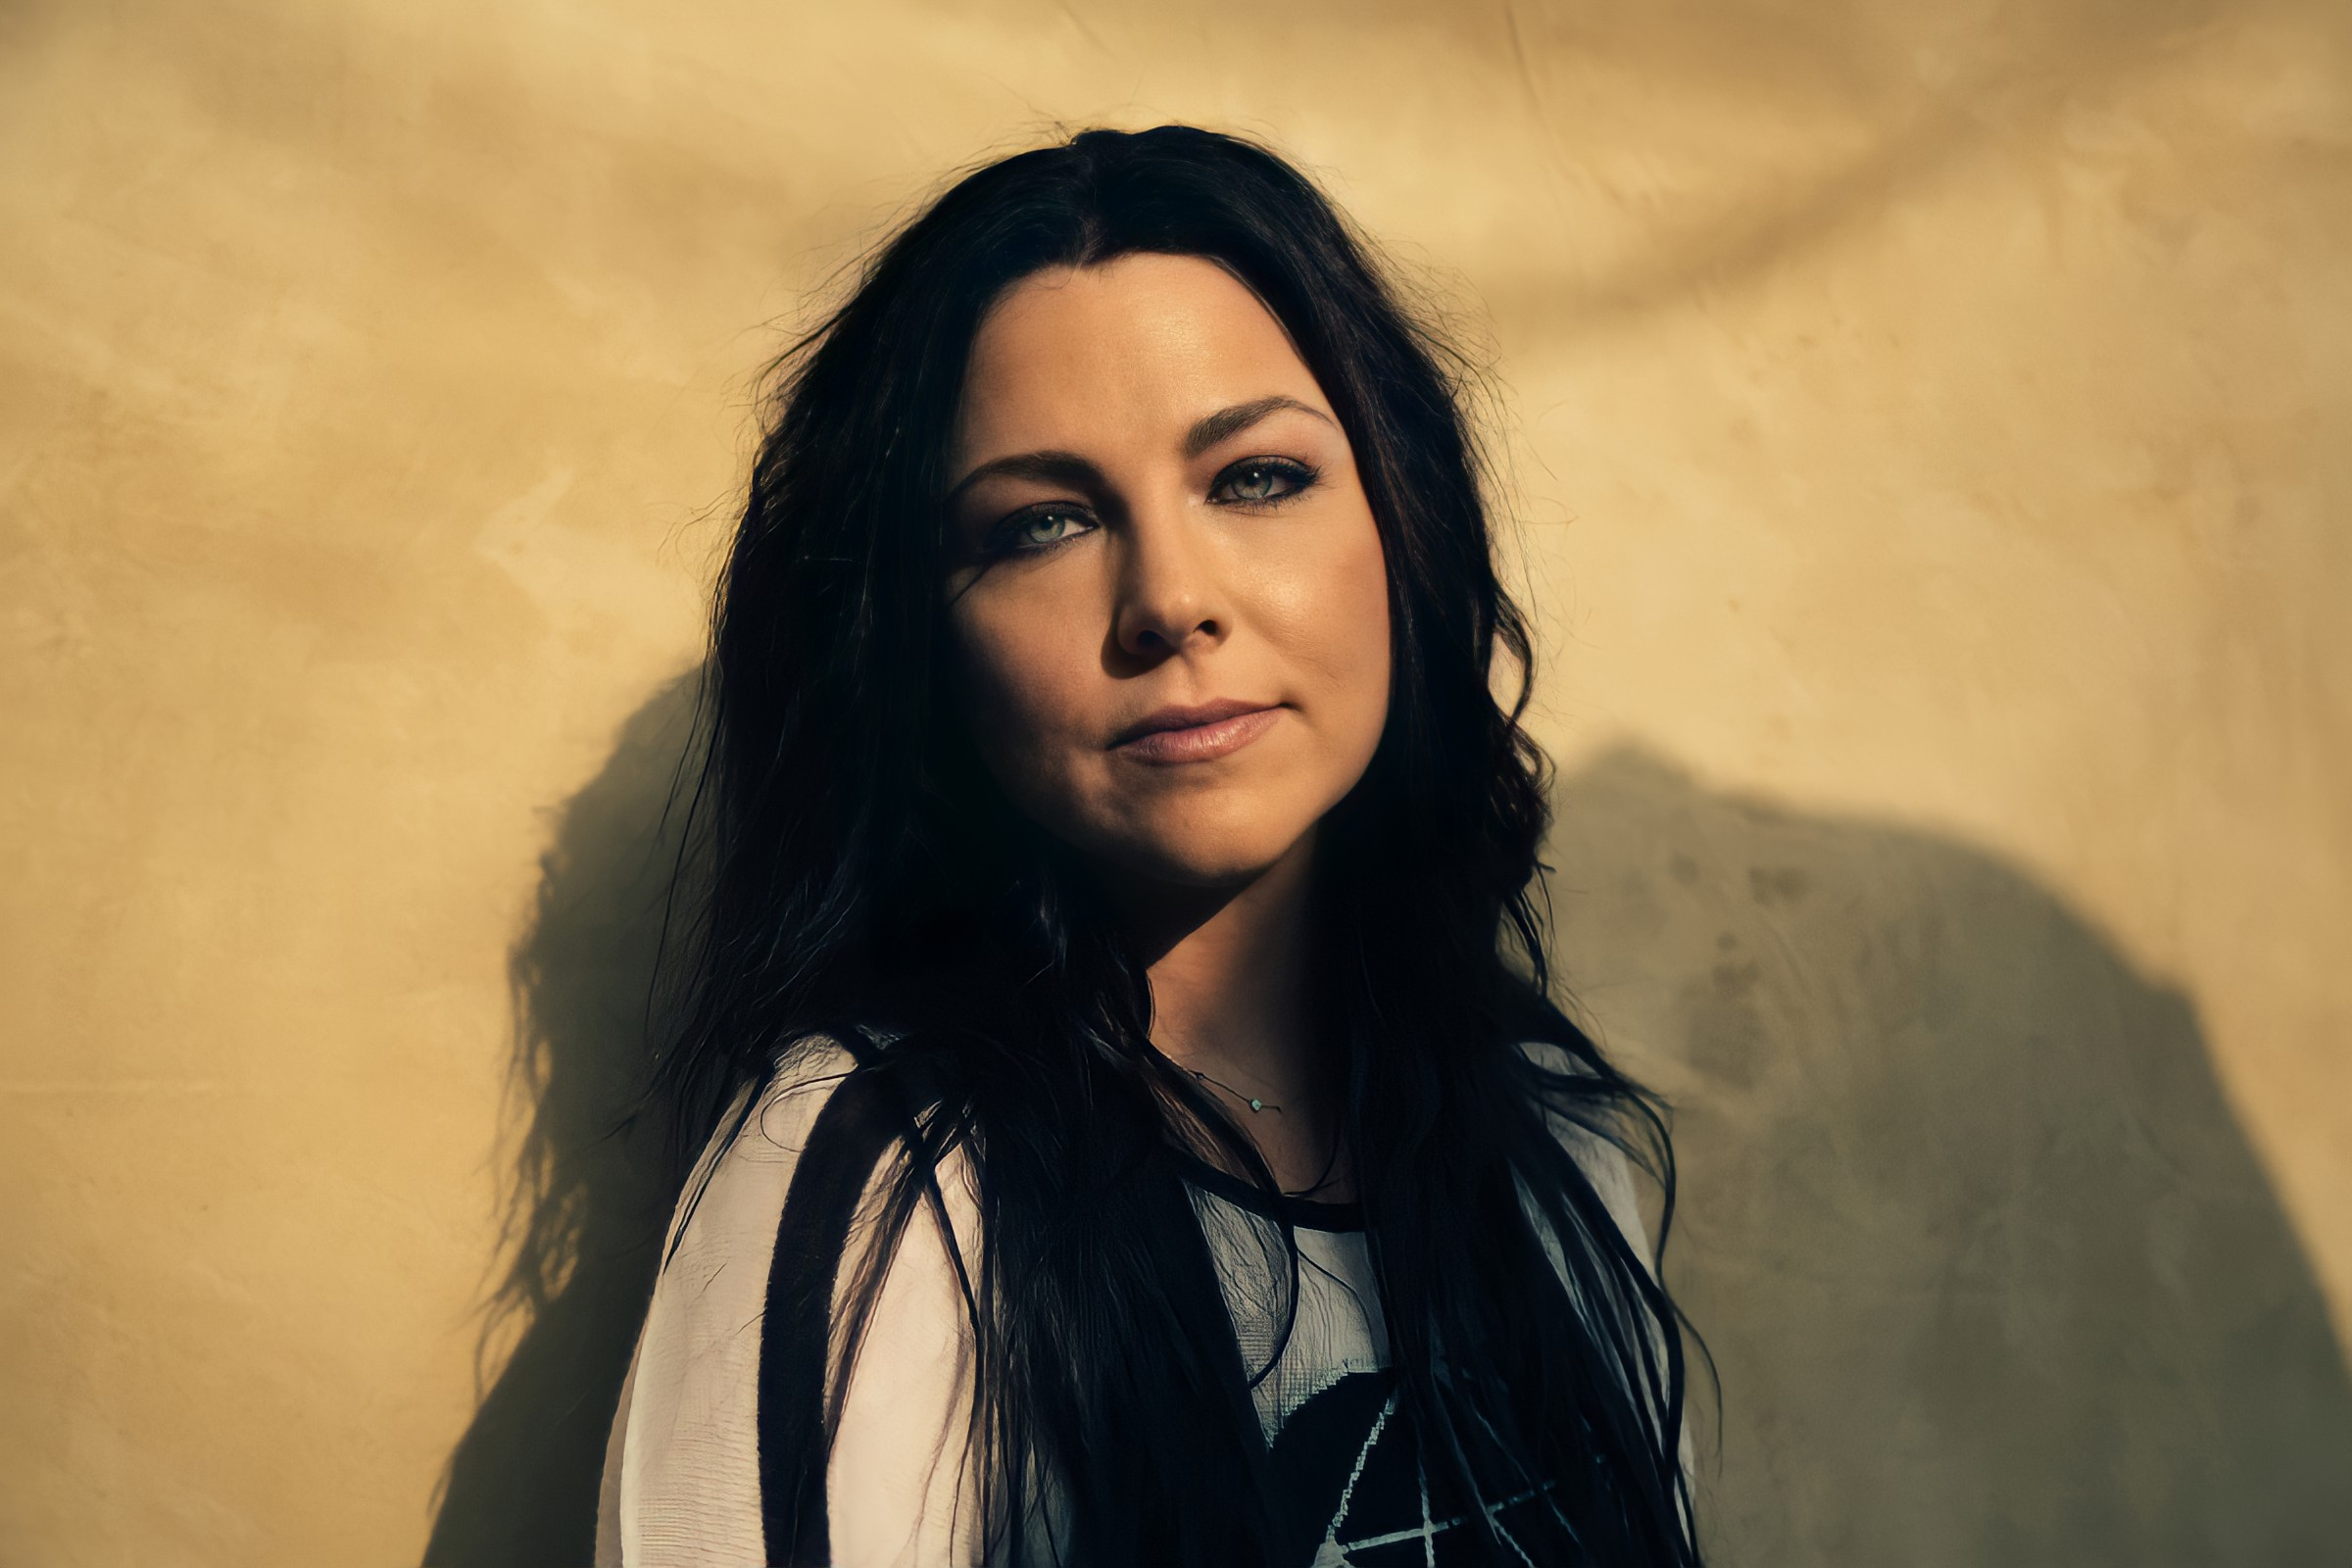 Evanescence Amy Lee - New Amy Lee Photoshoot Nueva Sesion 2020 Rollingstone HQ HD  #Evanescence #AmyLee